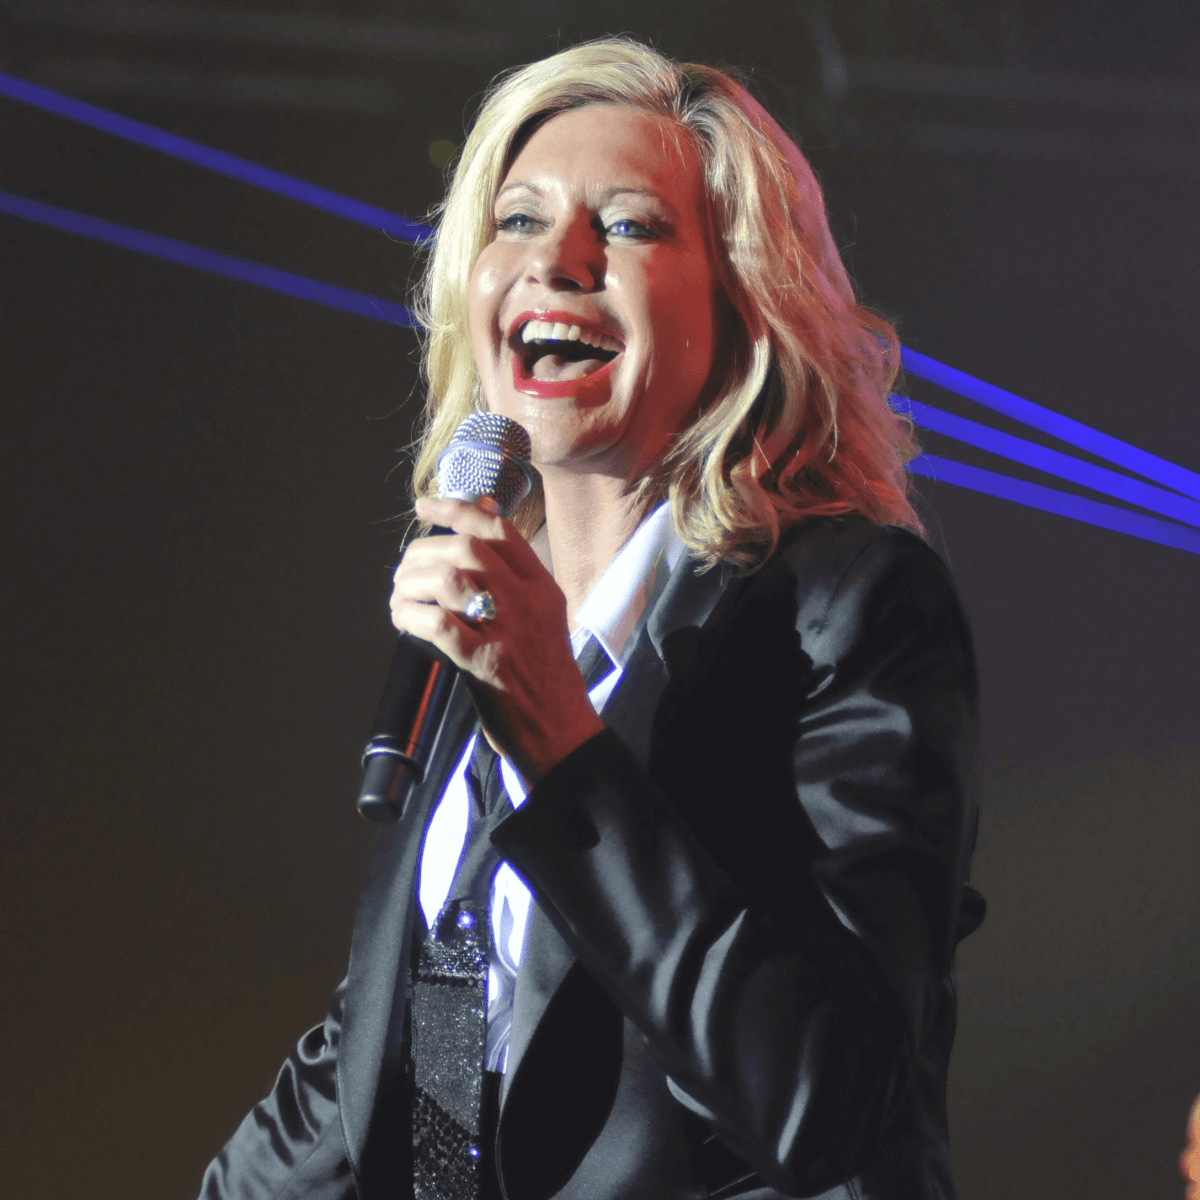 030, Houston Children's Charity Gala, November 2012, Olivia Newton-John